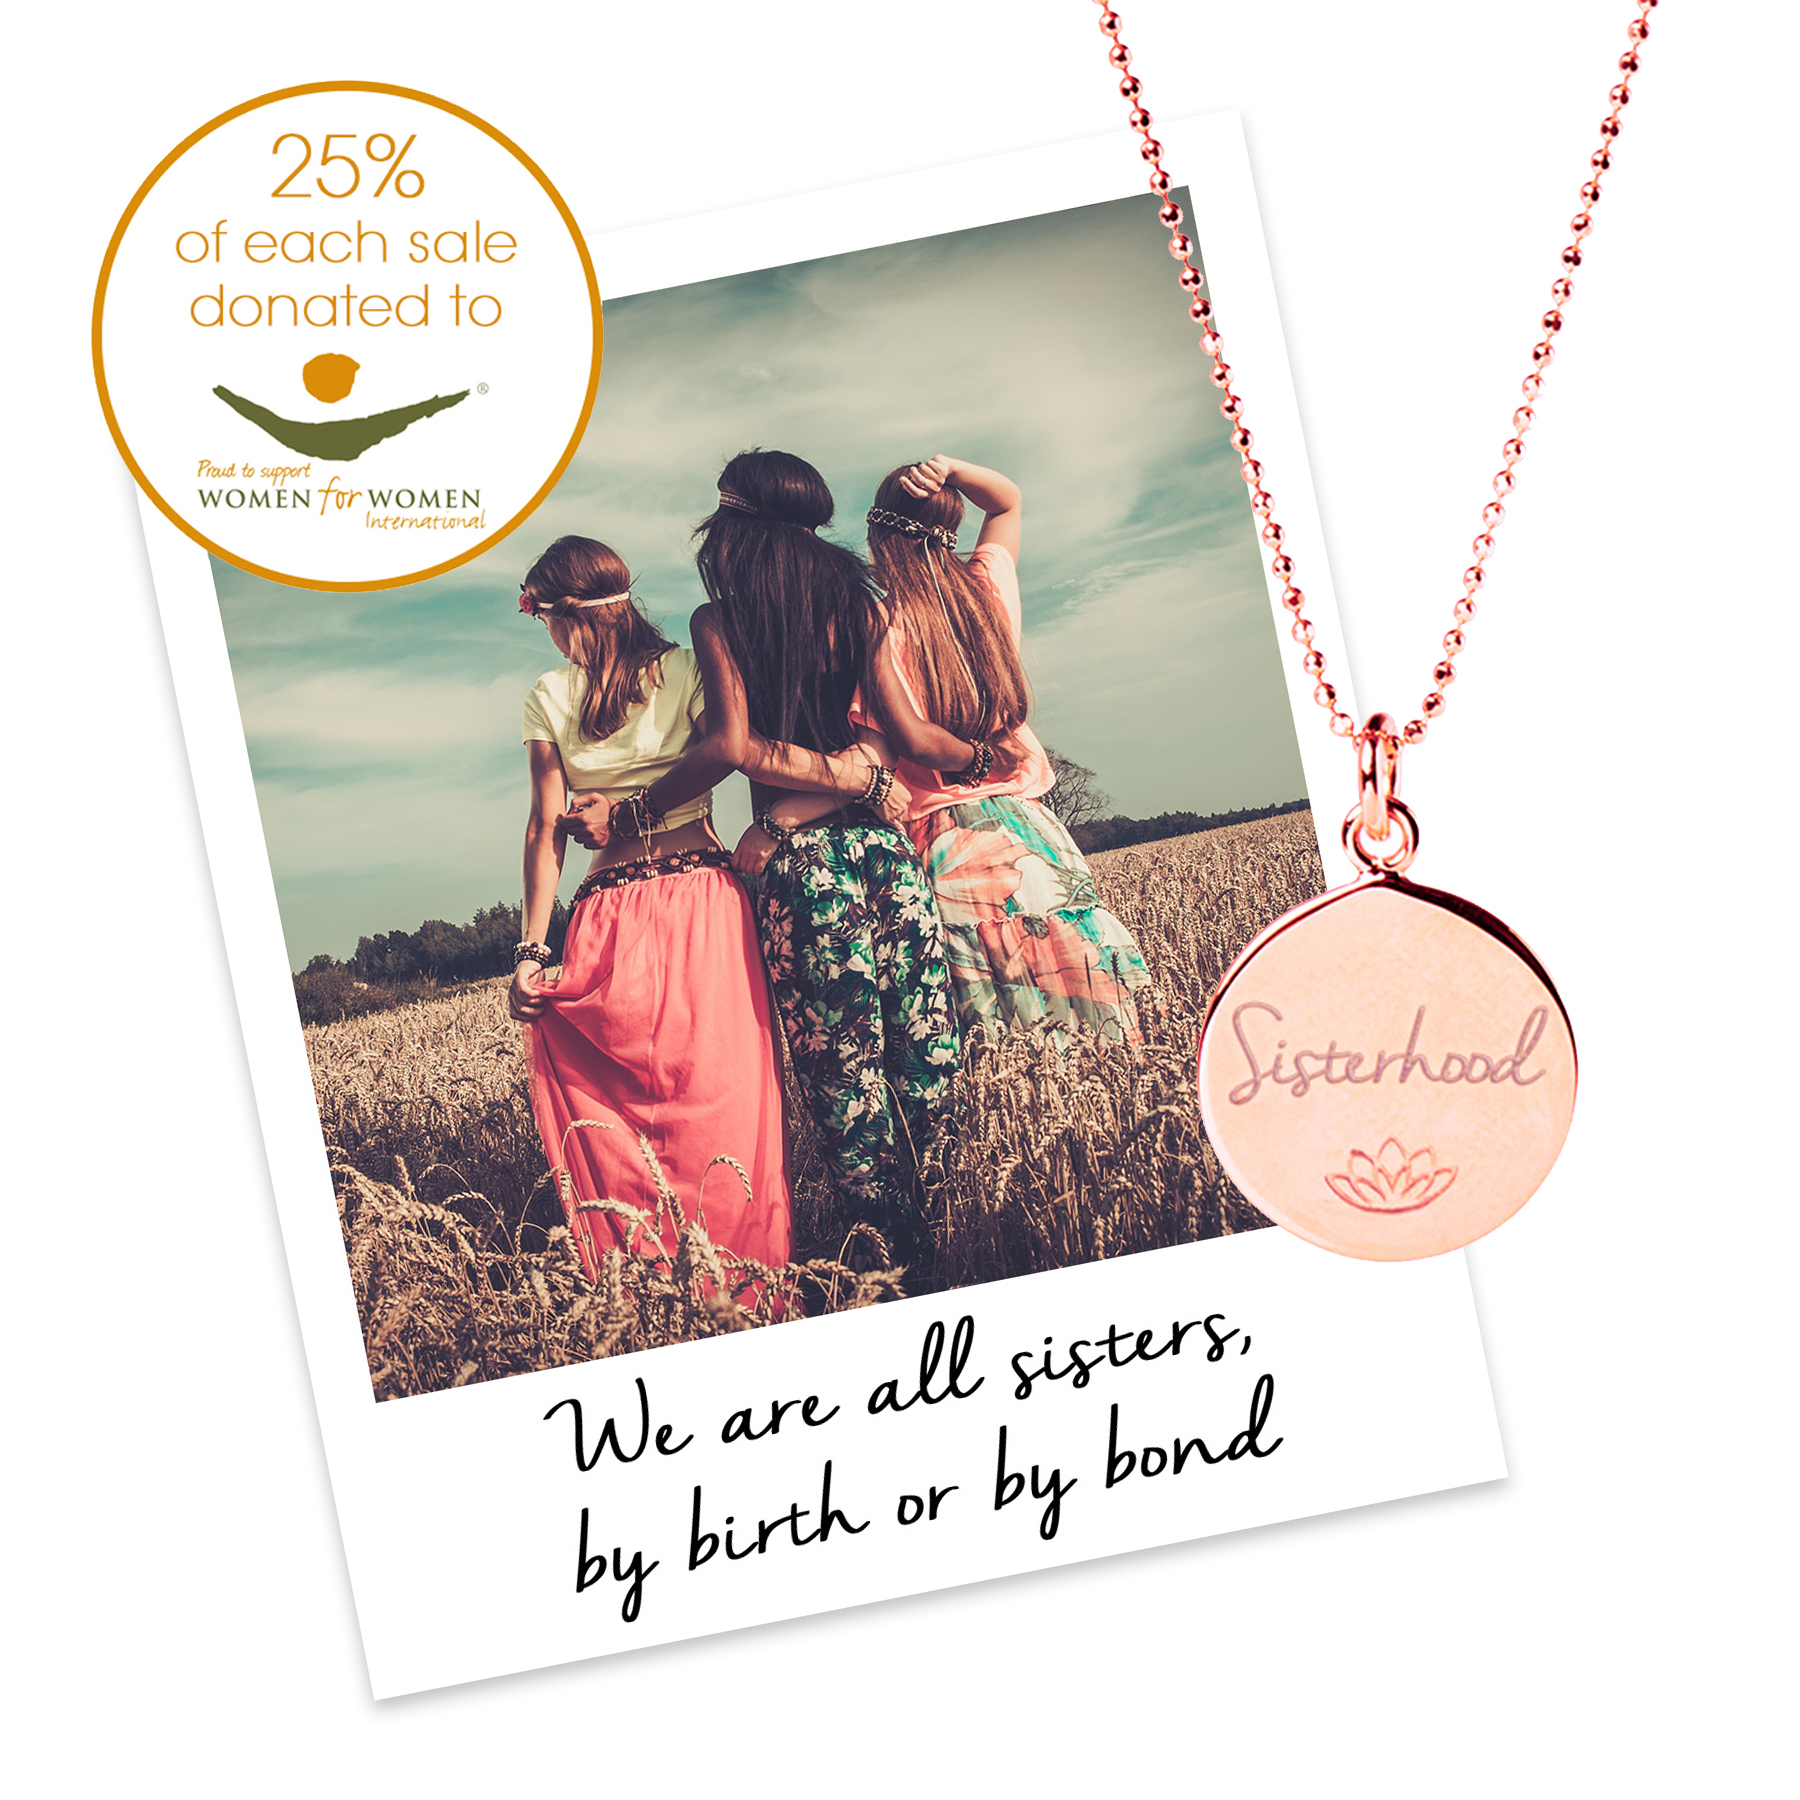 charity necklace for women for women international